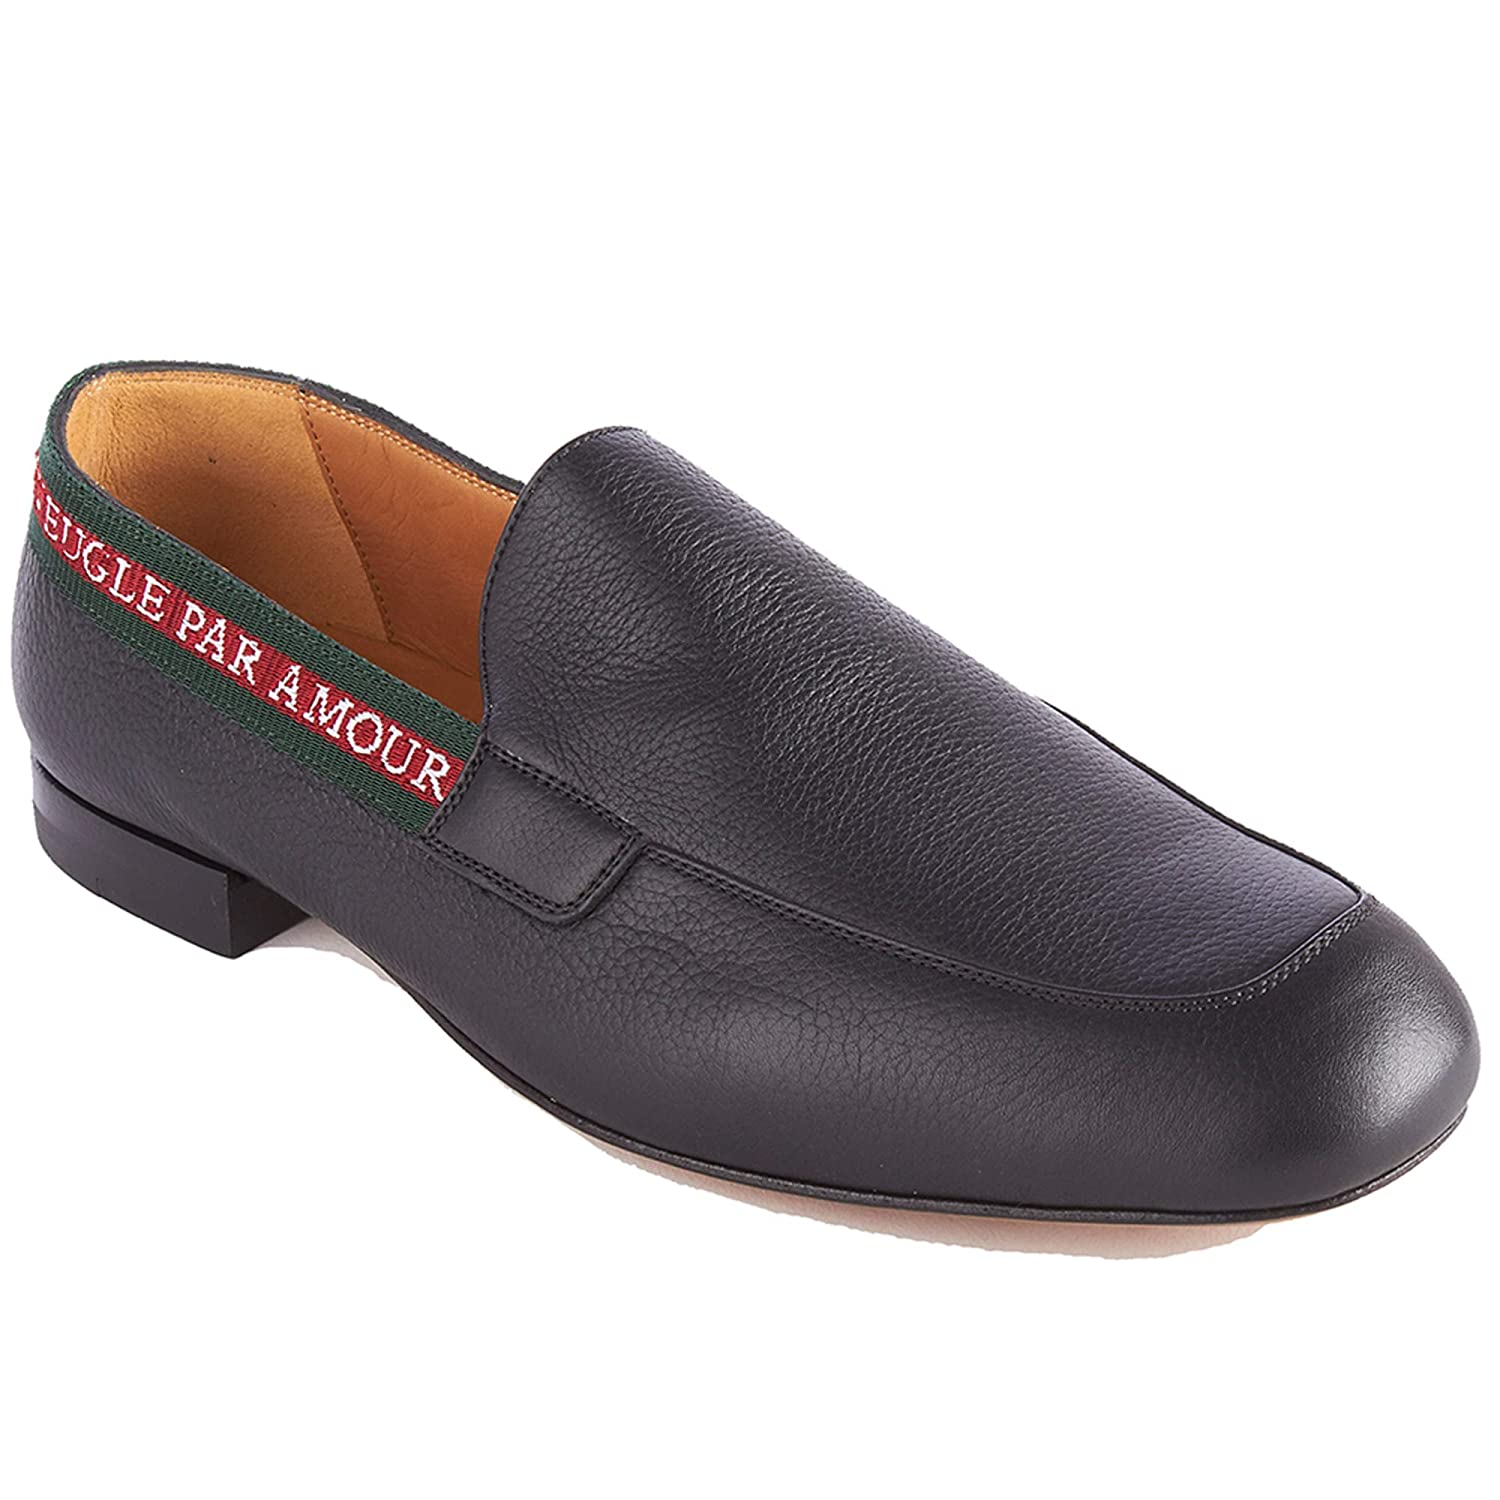 4257ce34727 Amazon.com  Gucci Men s Leather L Aveugle Par Amour Loafers Black Shoes   Shoes